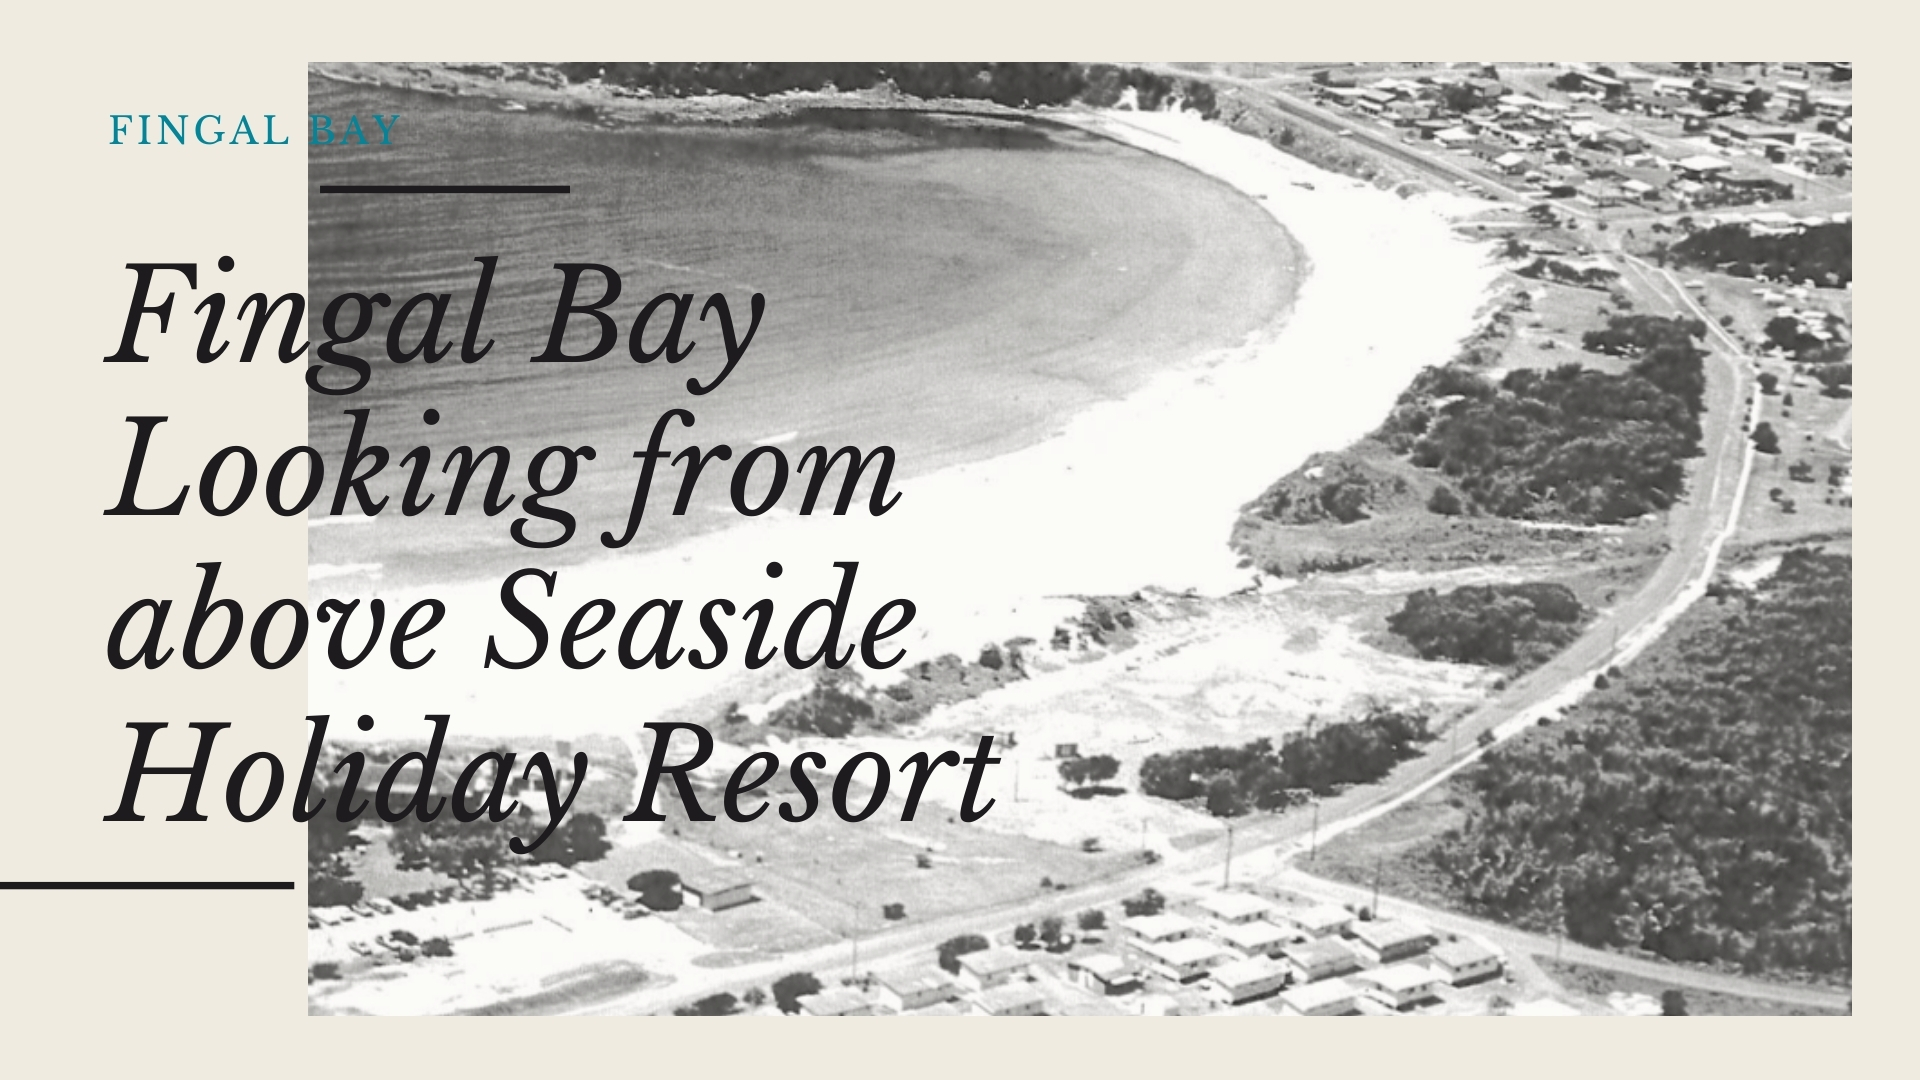 Historic photo of Fingal Bay and Seaside Holiday Resort